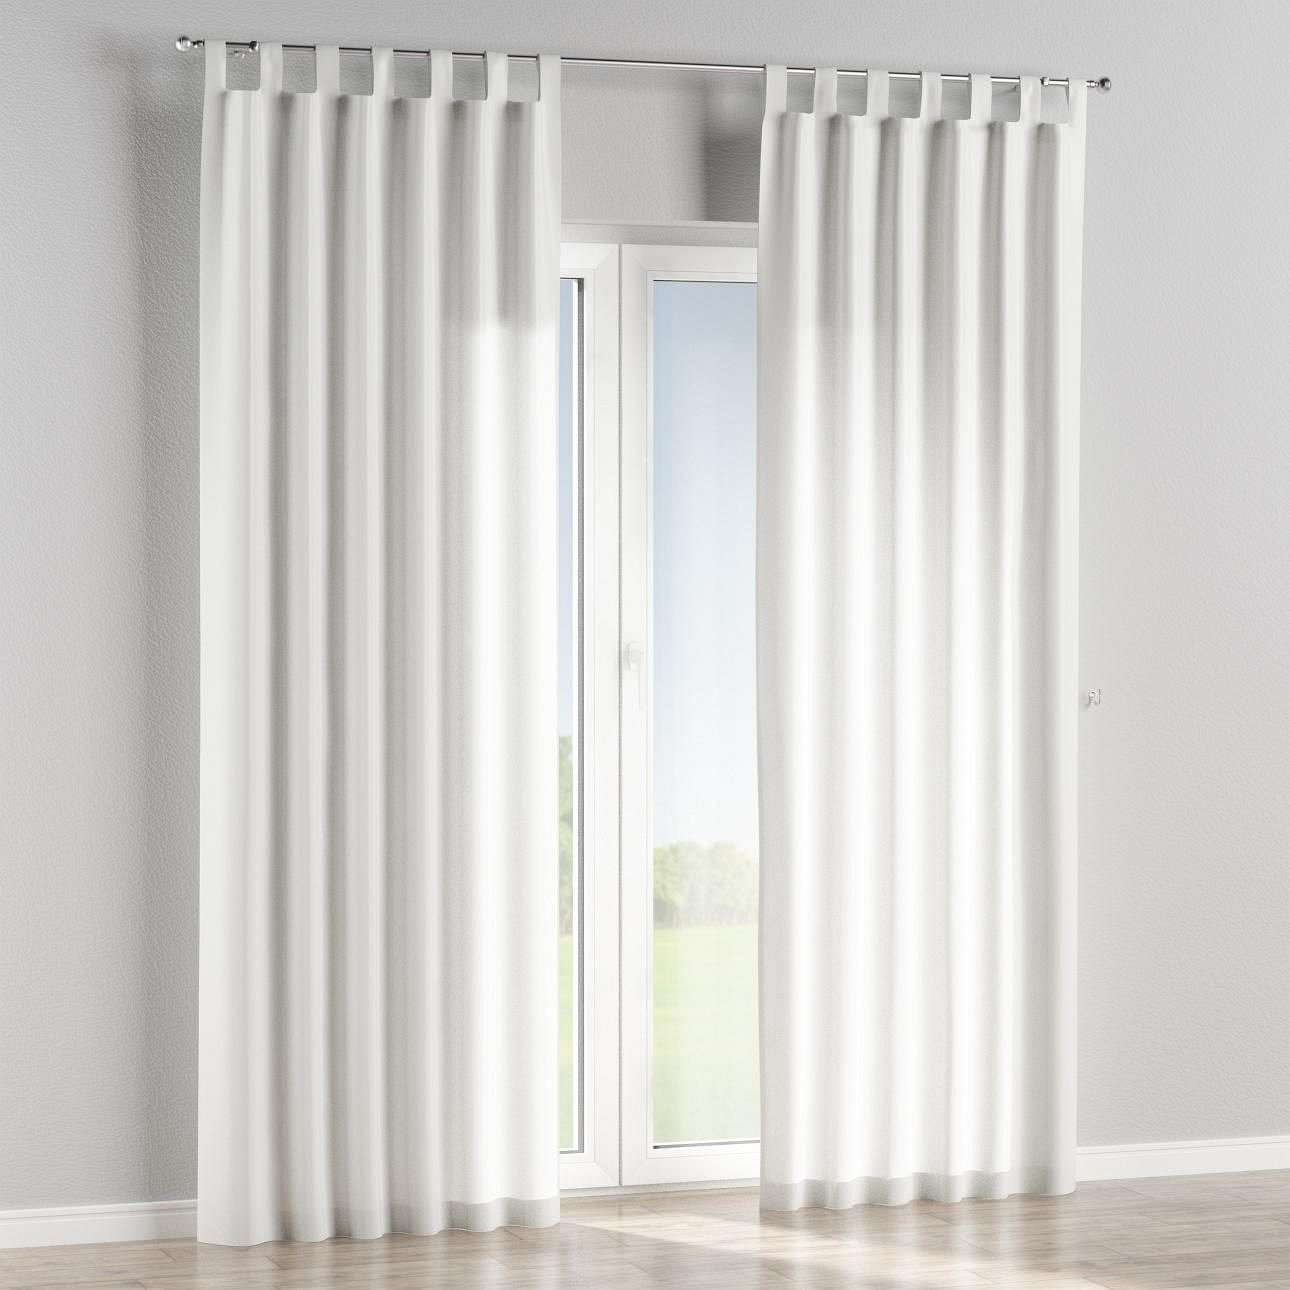 Tab top curtains in collection Rustica, fabric: 138-22